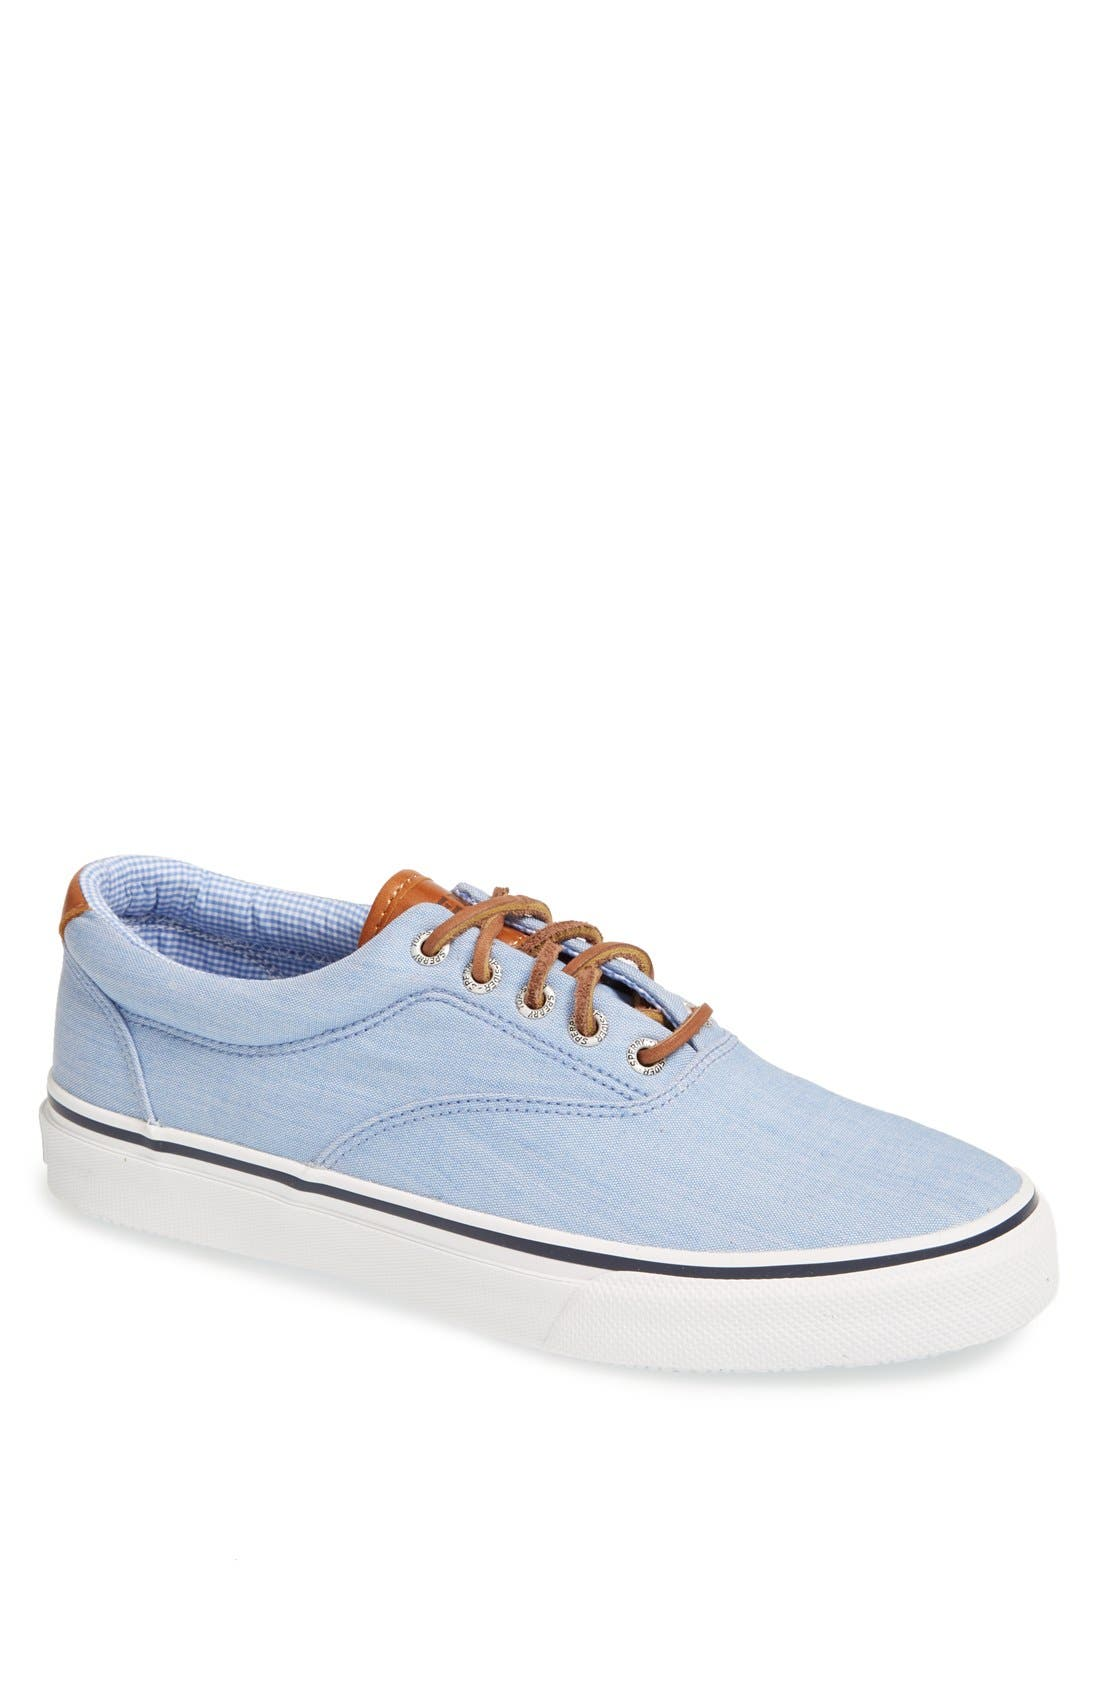 Main Image - Sperry Top-Sider® 'CVO' Chambray Sneaker (Men)